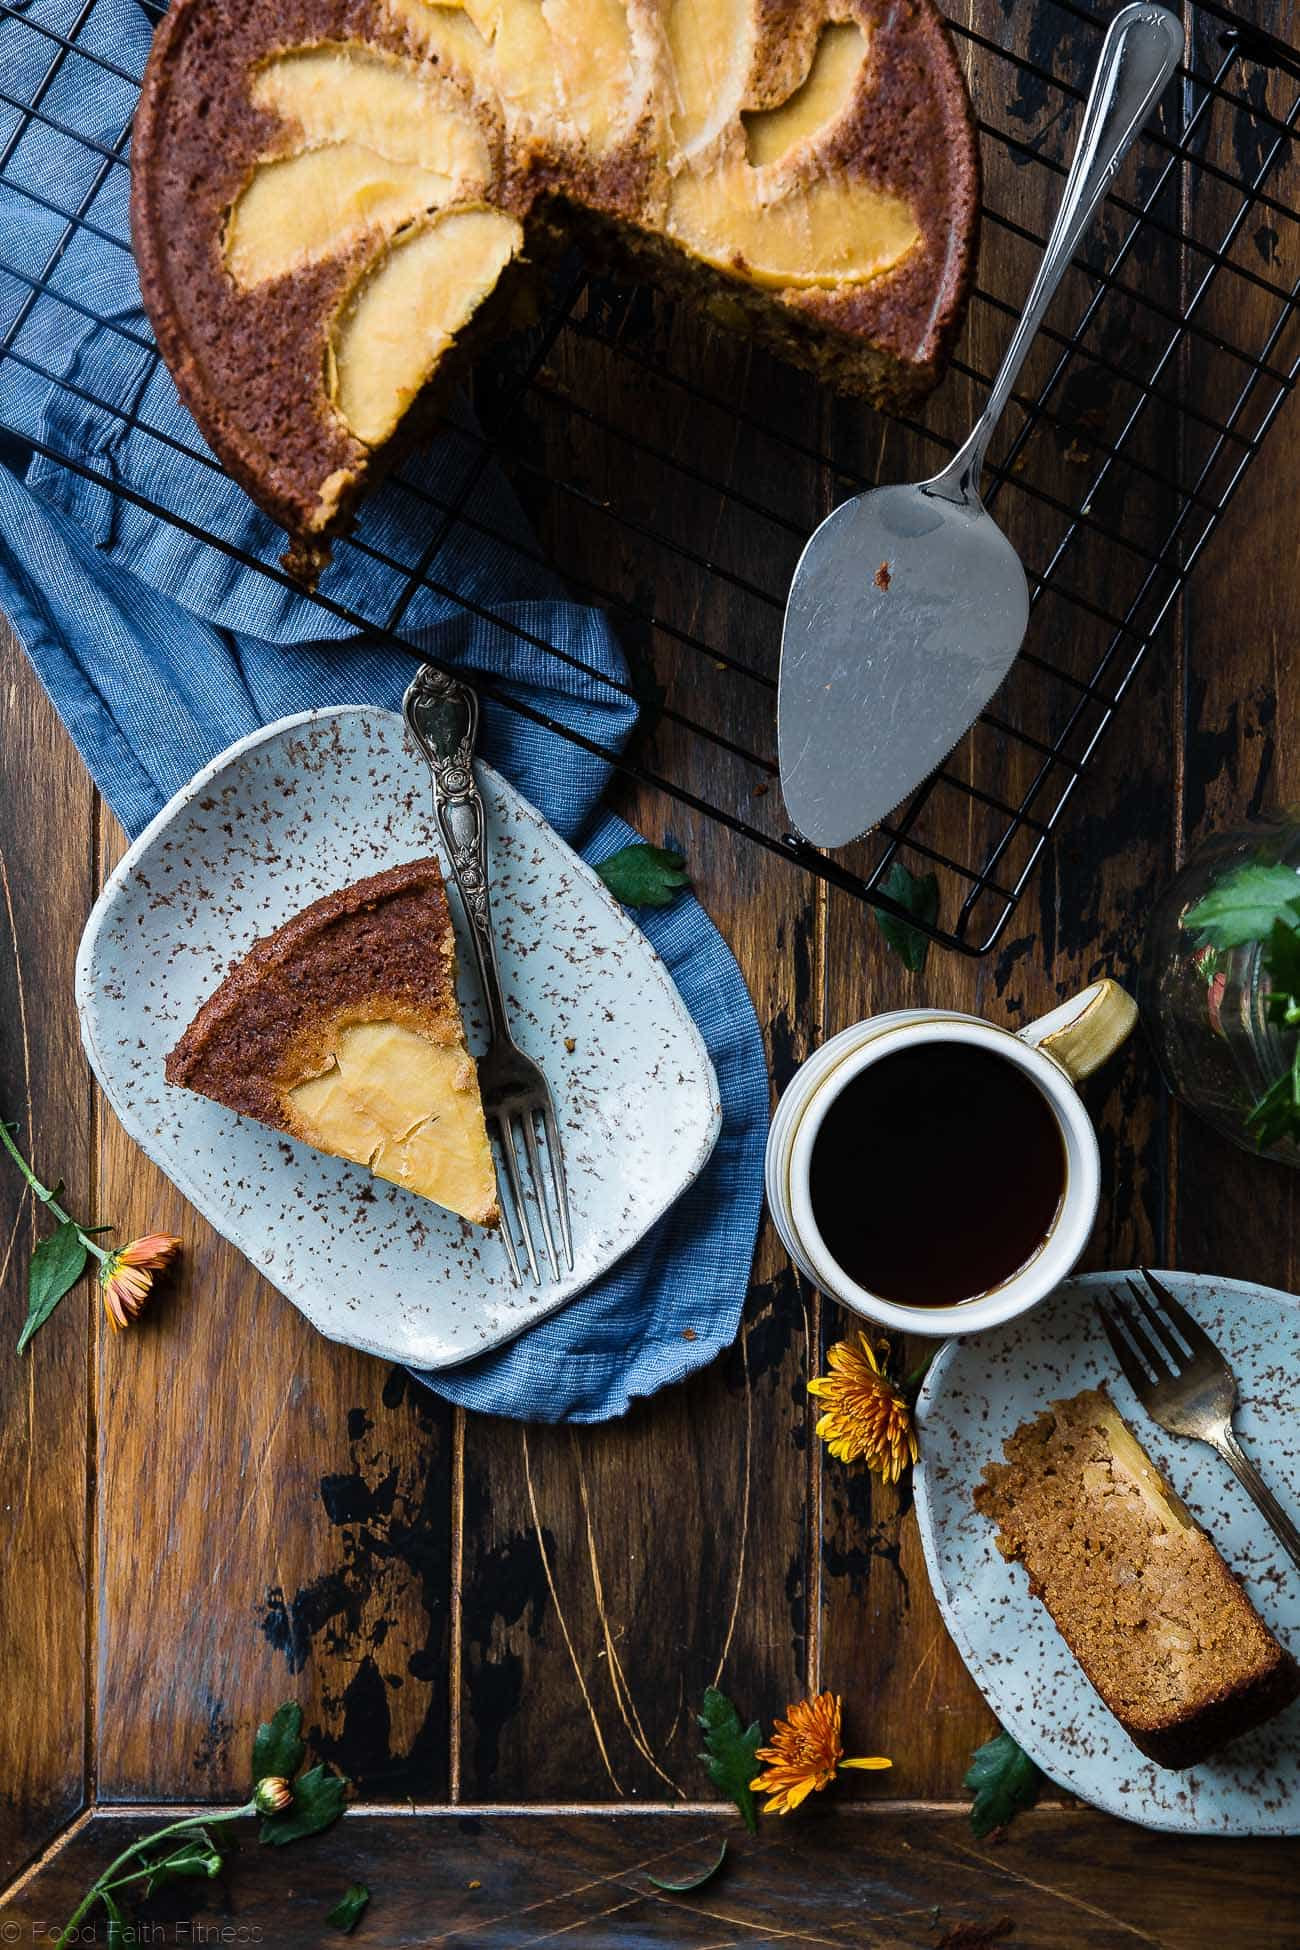 Gluten Free Apple Cinnamon Coffee Cake -This almond flour apple cake is made with almond flour, apples and naturally sweetened with coconut sugar. Its a healthy, paleo and freezer-friendly breakfast that you will never believe is butter and oil free! | Foodfaithfitness.com | @FoodFaithFit